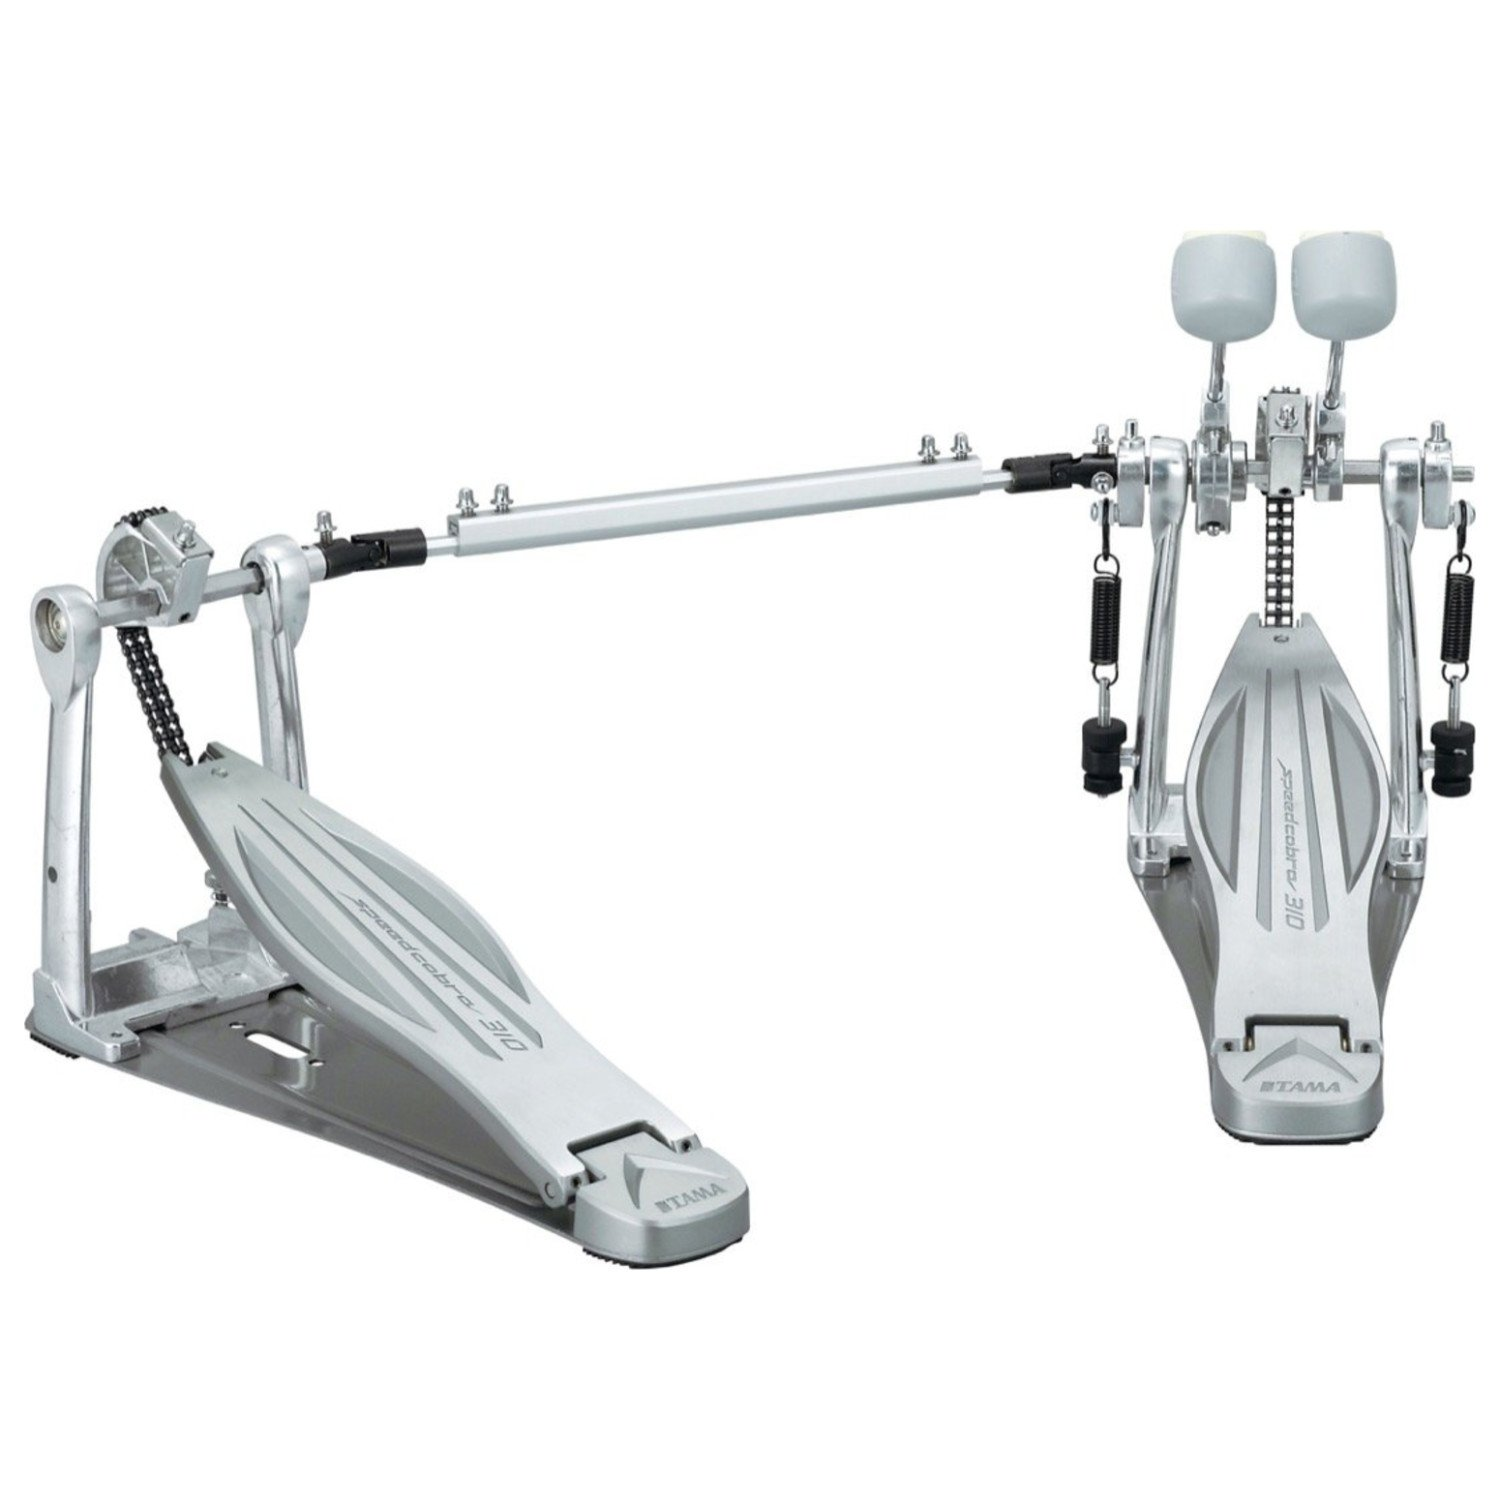 Tama HP310LW Speed Cobra Bass Pedal - Double Pedal